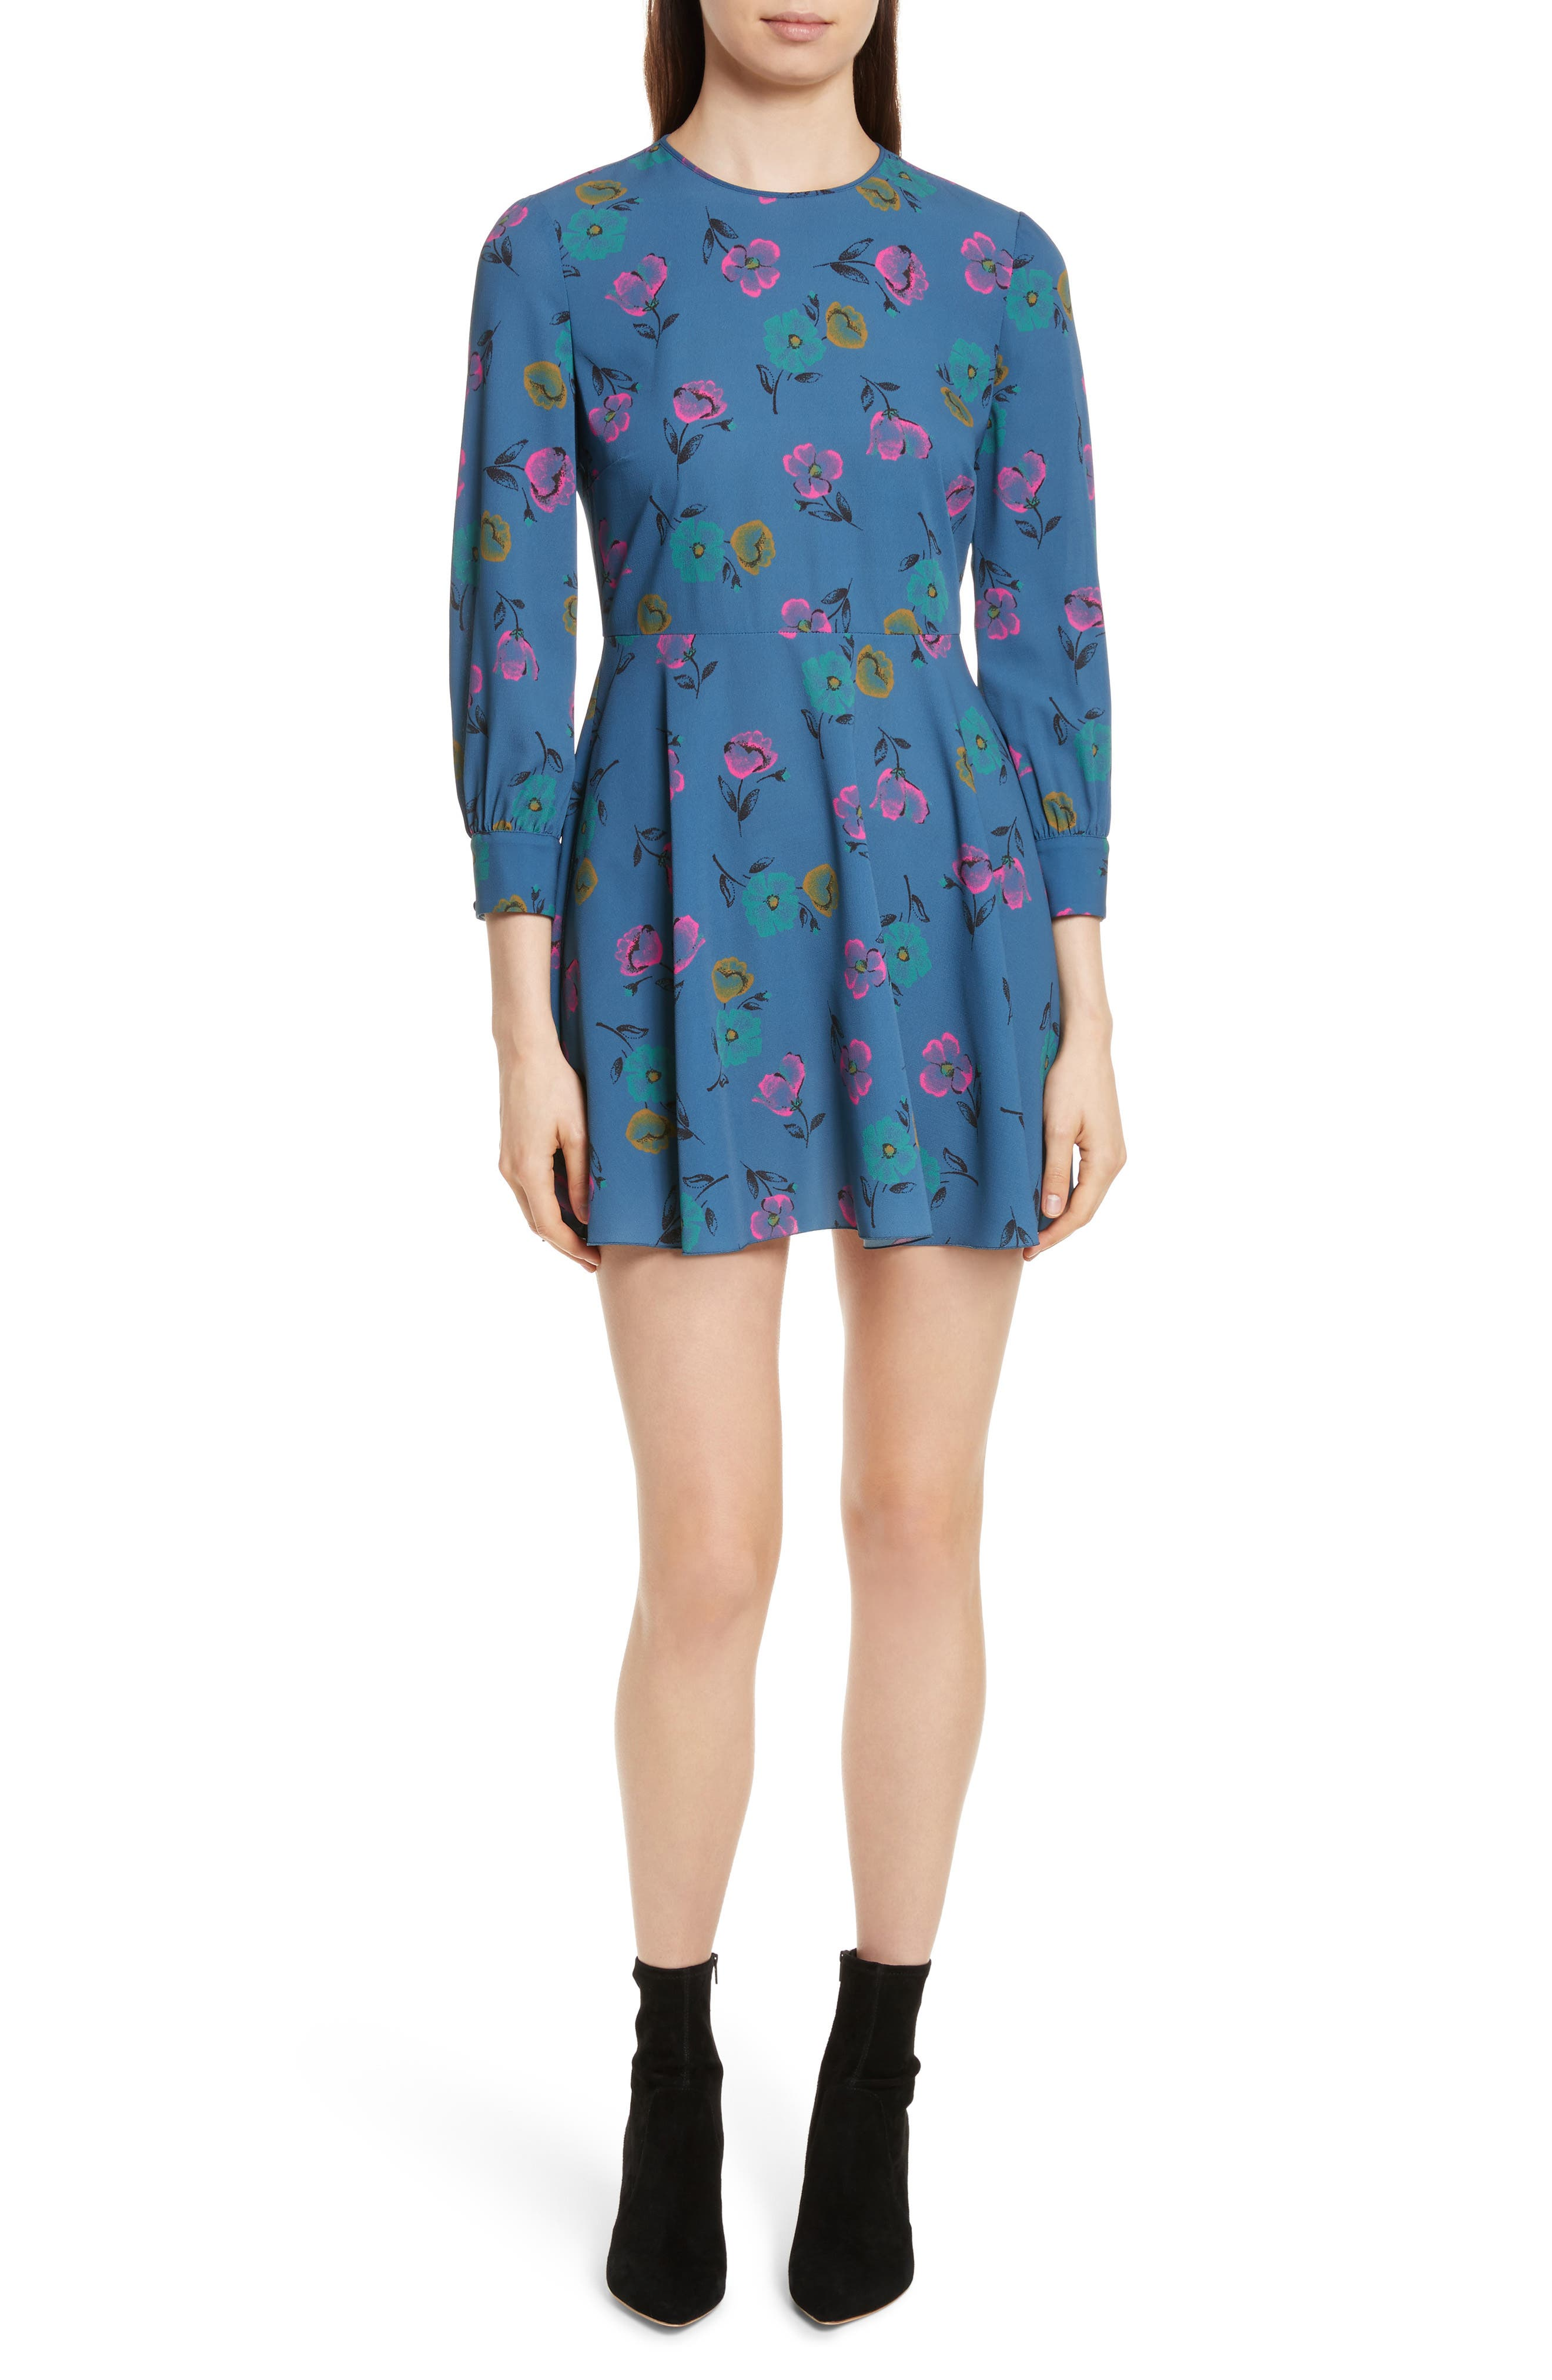 RED Valentino Anemone Floral Print Crepe Dress